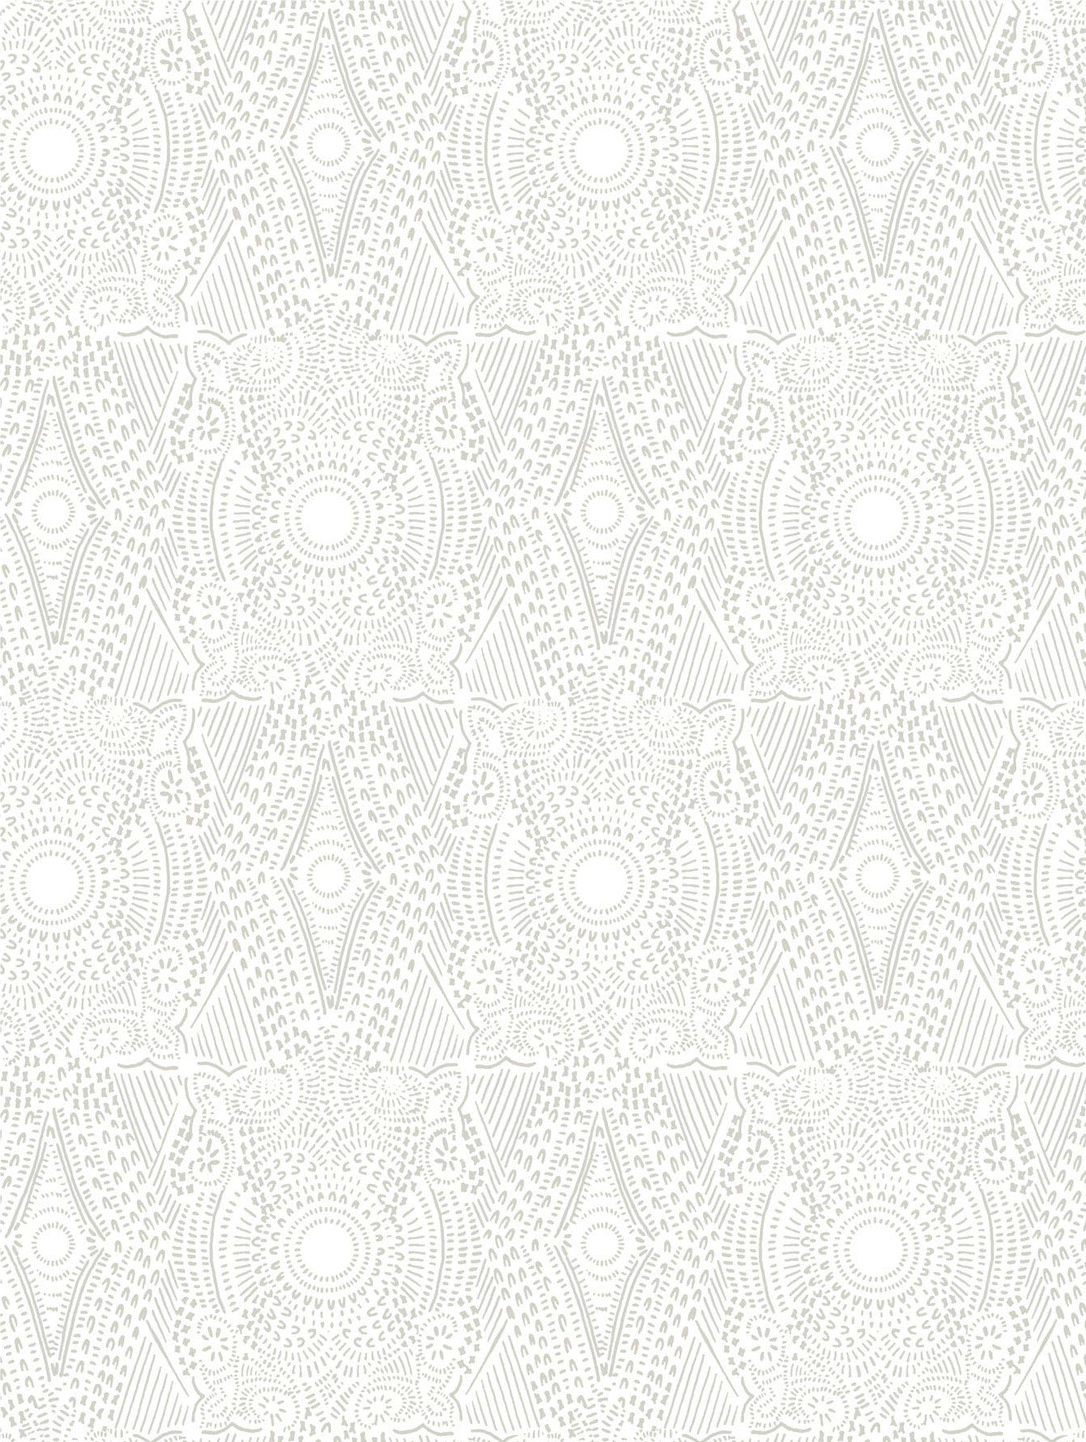 Diamante Pattern in Grey and White | By Hygge & West